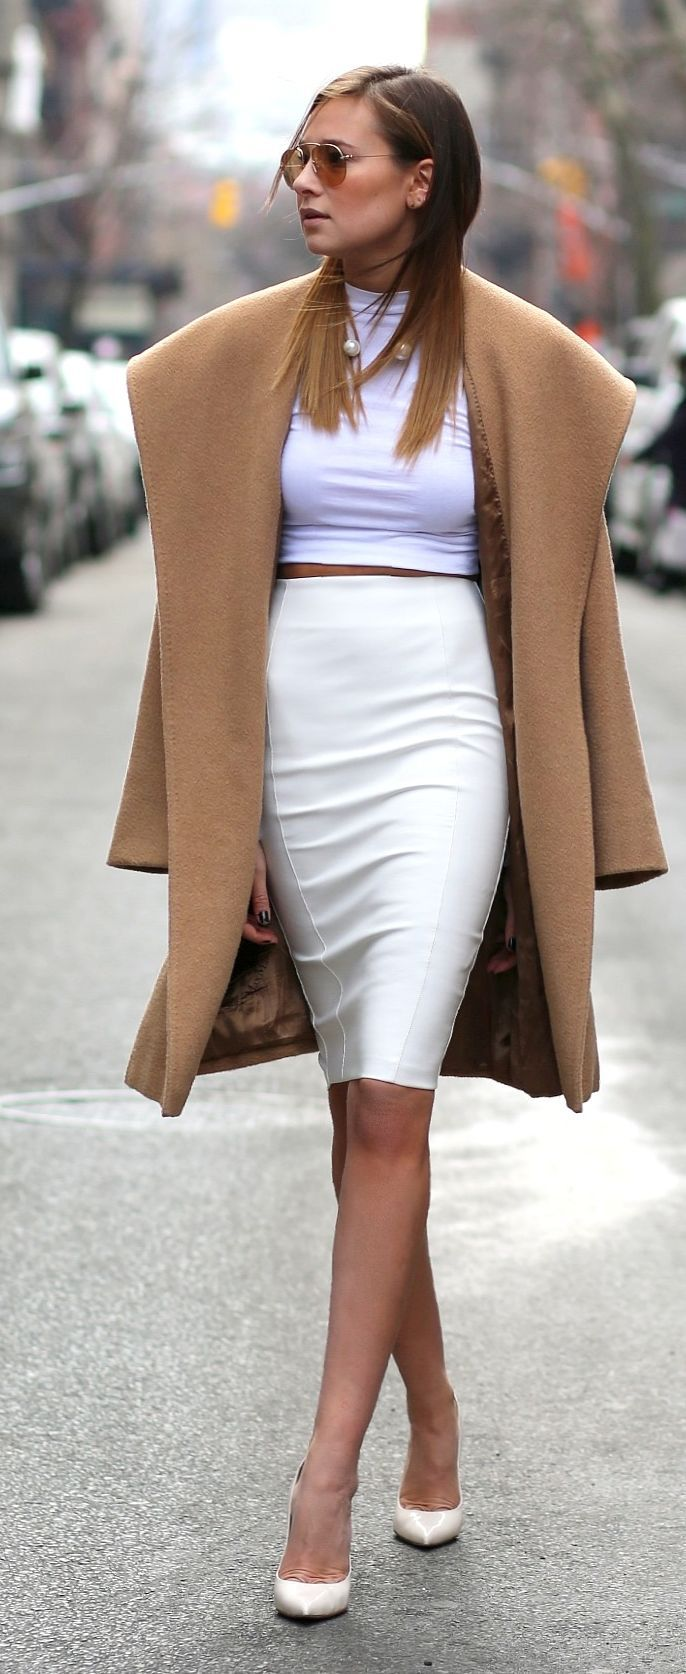 Kardashian Kollection White High Waisted Pencil Skirt by We Wore What